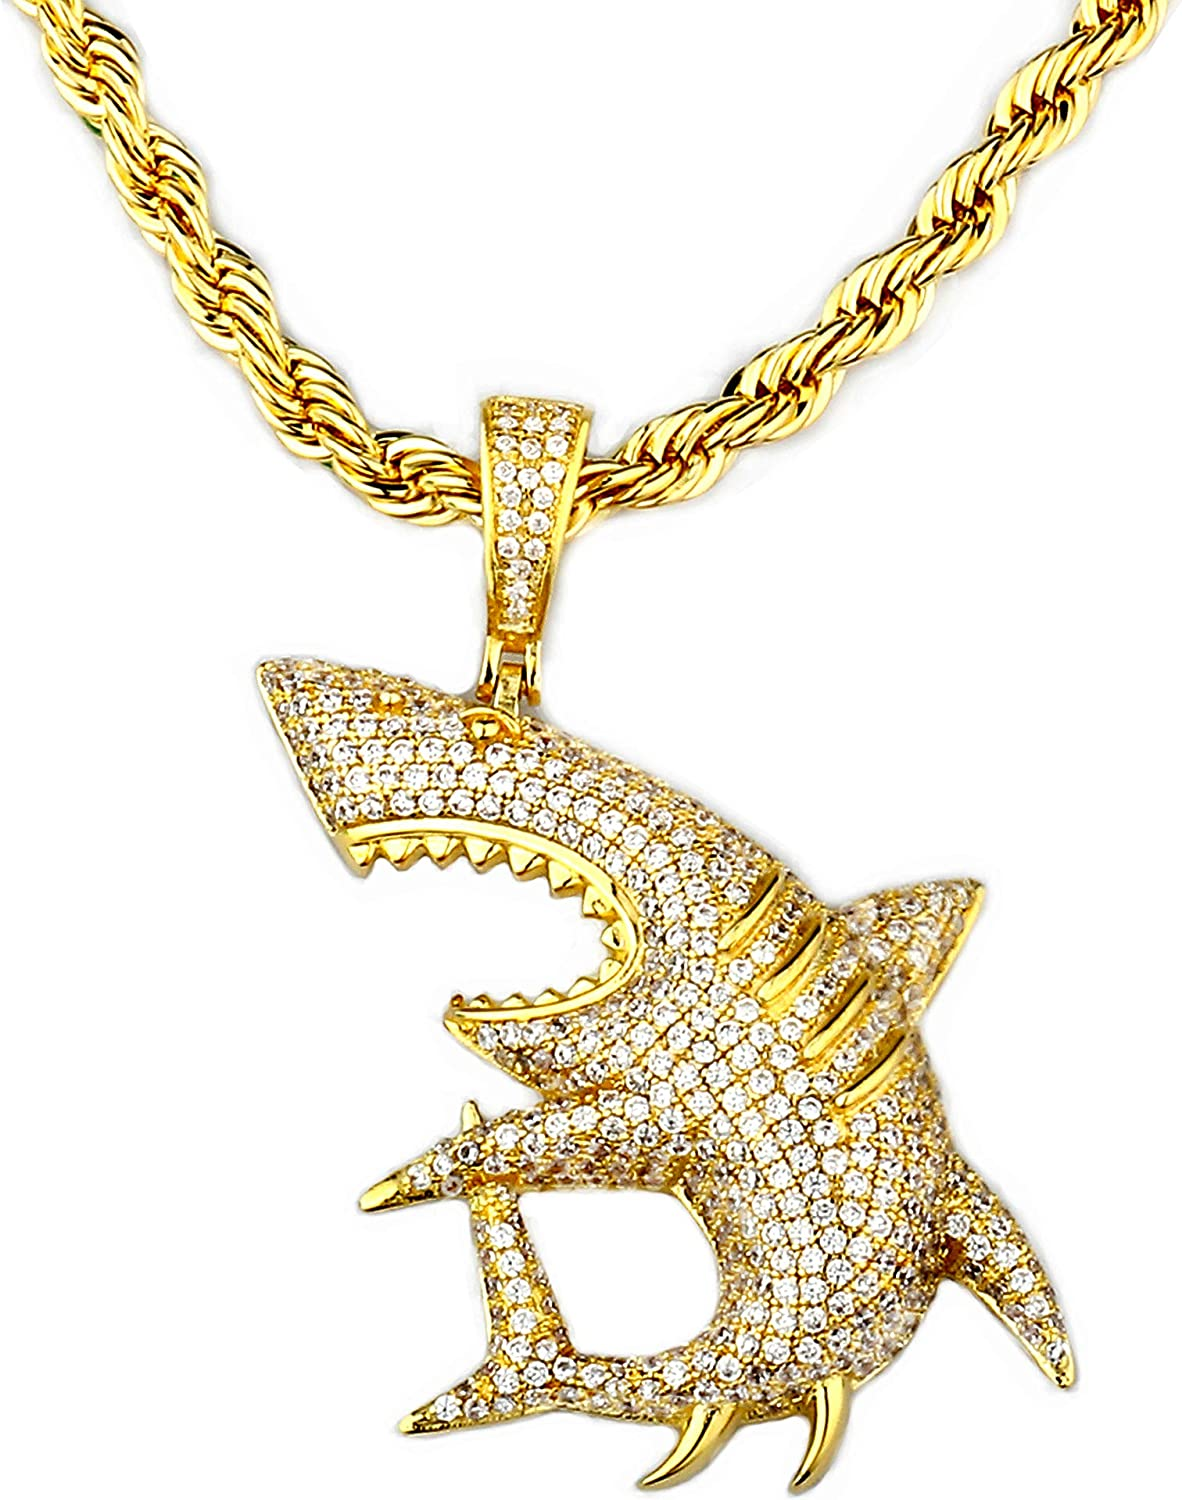 "TENGLAI Hip Hop Shark Necklace, Long Chain Punk Rock Choker, Crystal Fish Jewelry, Premium Unisex Cubic Zirconia Shark Pendant with 24"" Rope/Box Chain"